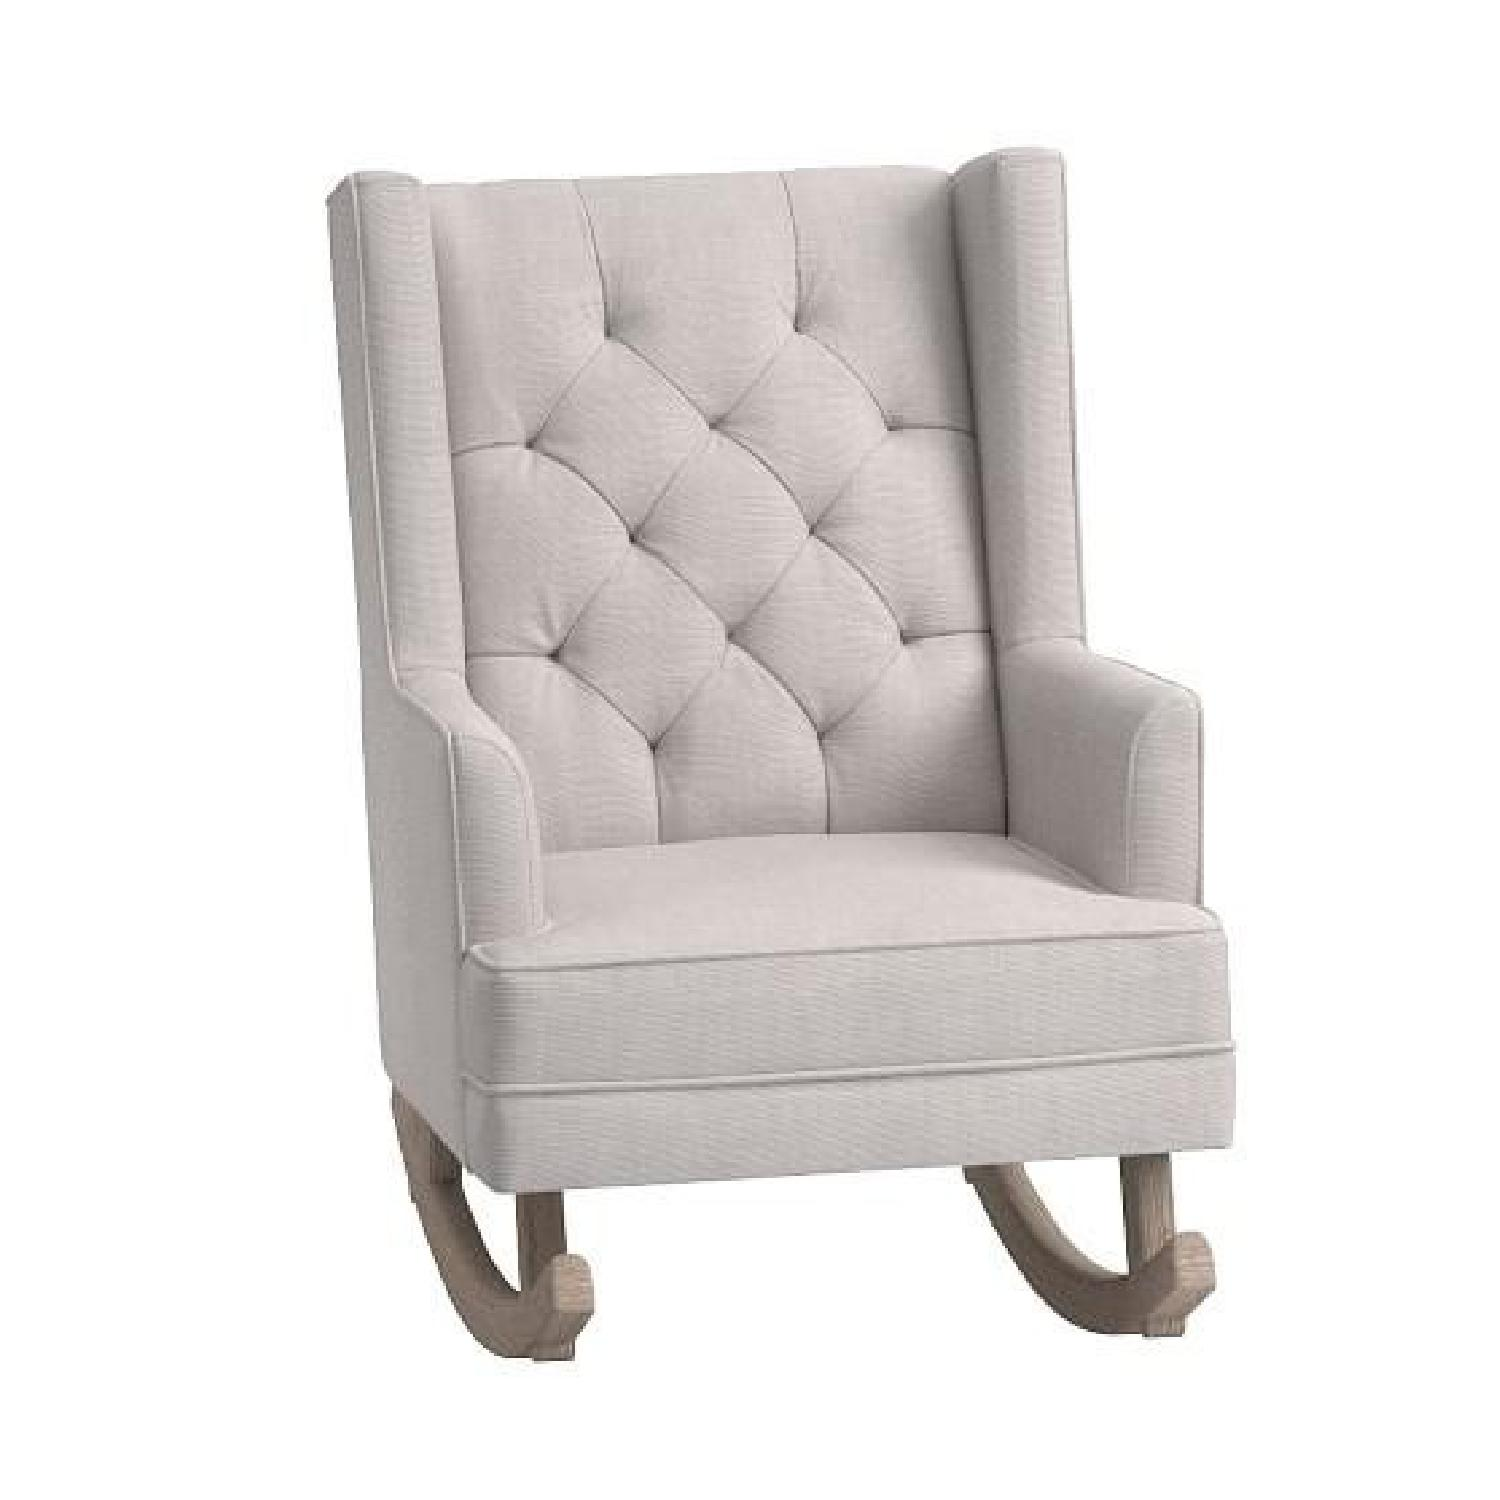 Phenomenal Pottery Barn Kids Tufted Wingback Convertible Rocker Aptdeco Inzonedesignstudio Interior Chair Design Inzonedesignstudiocom